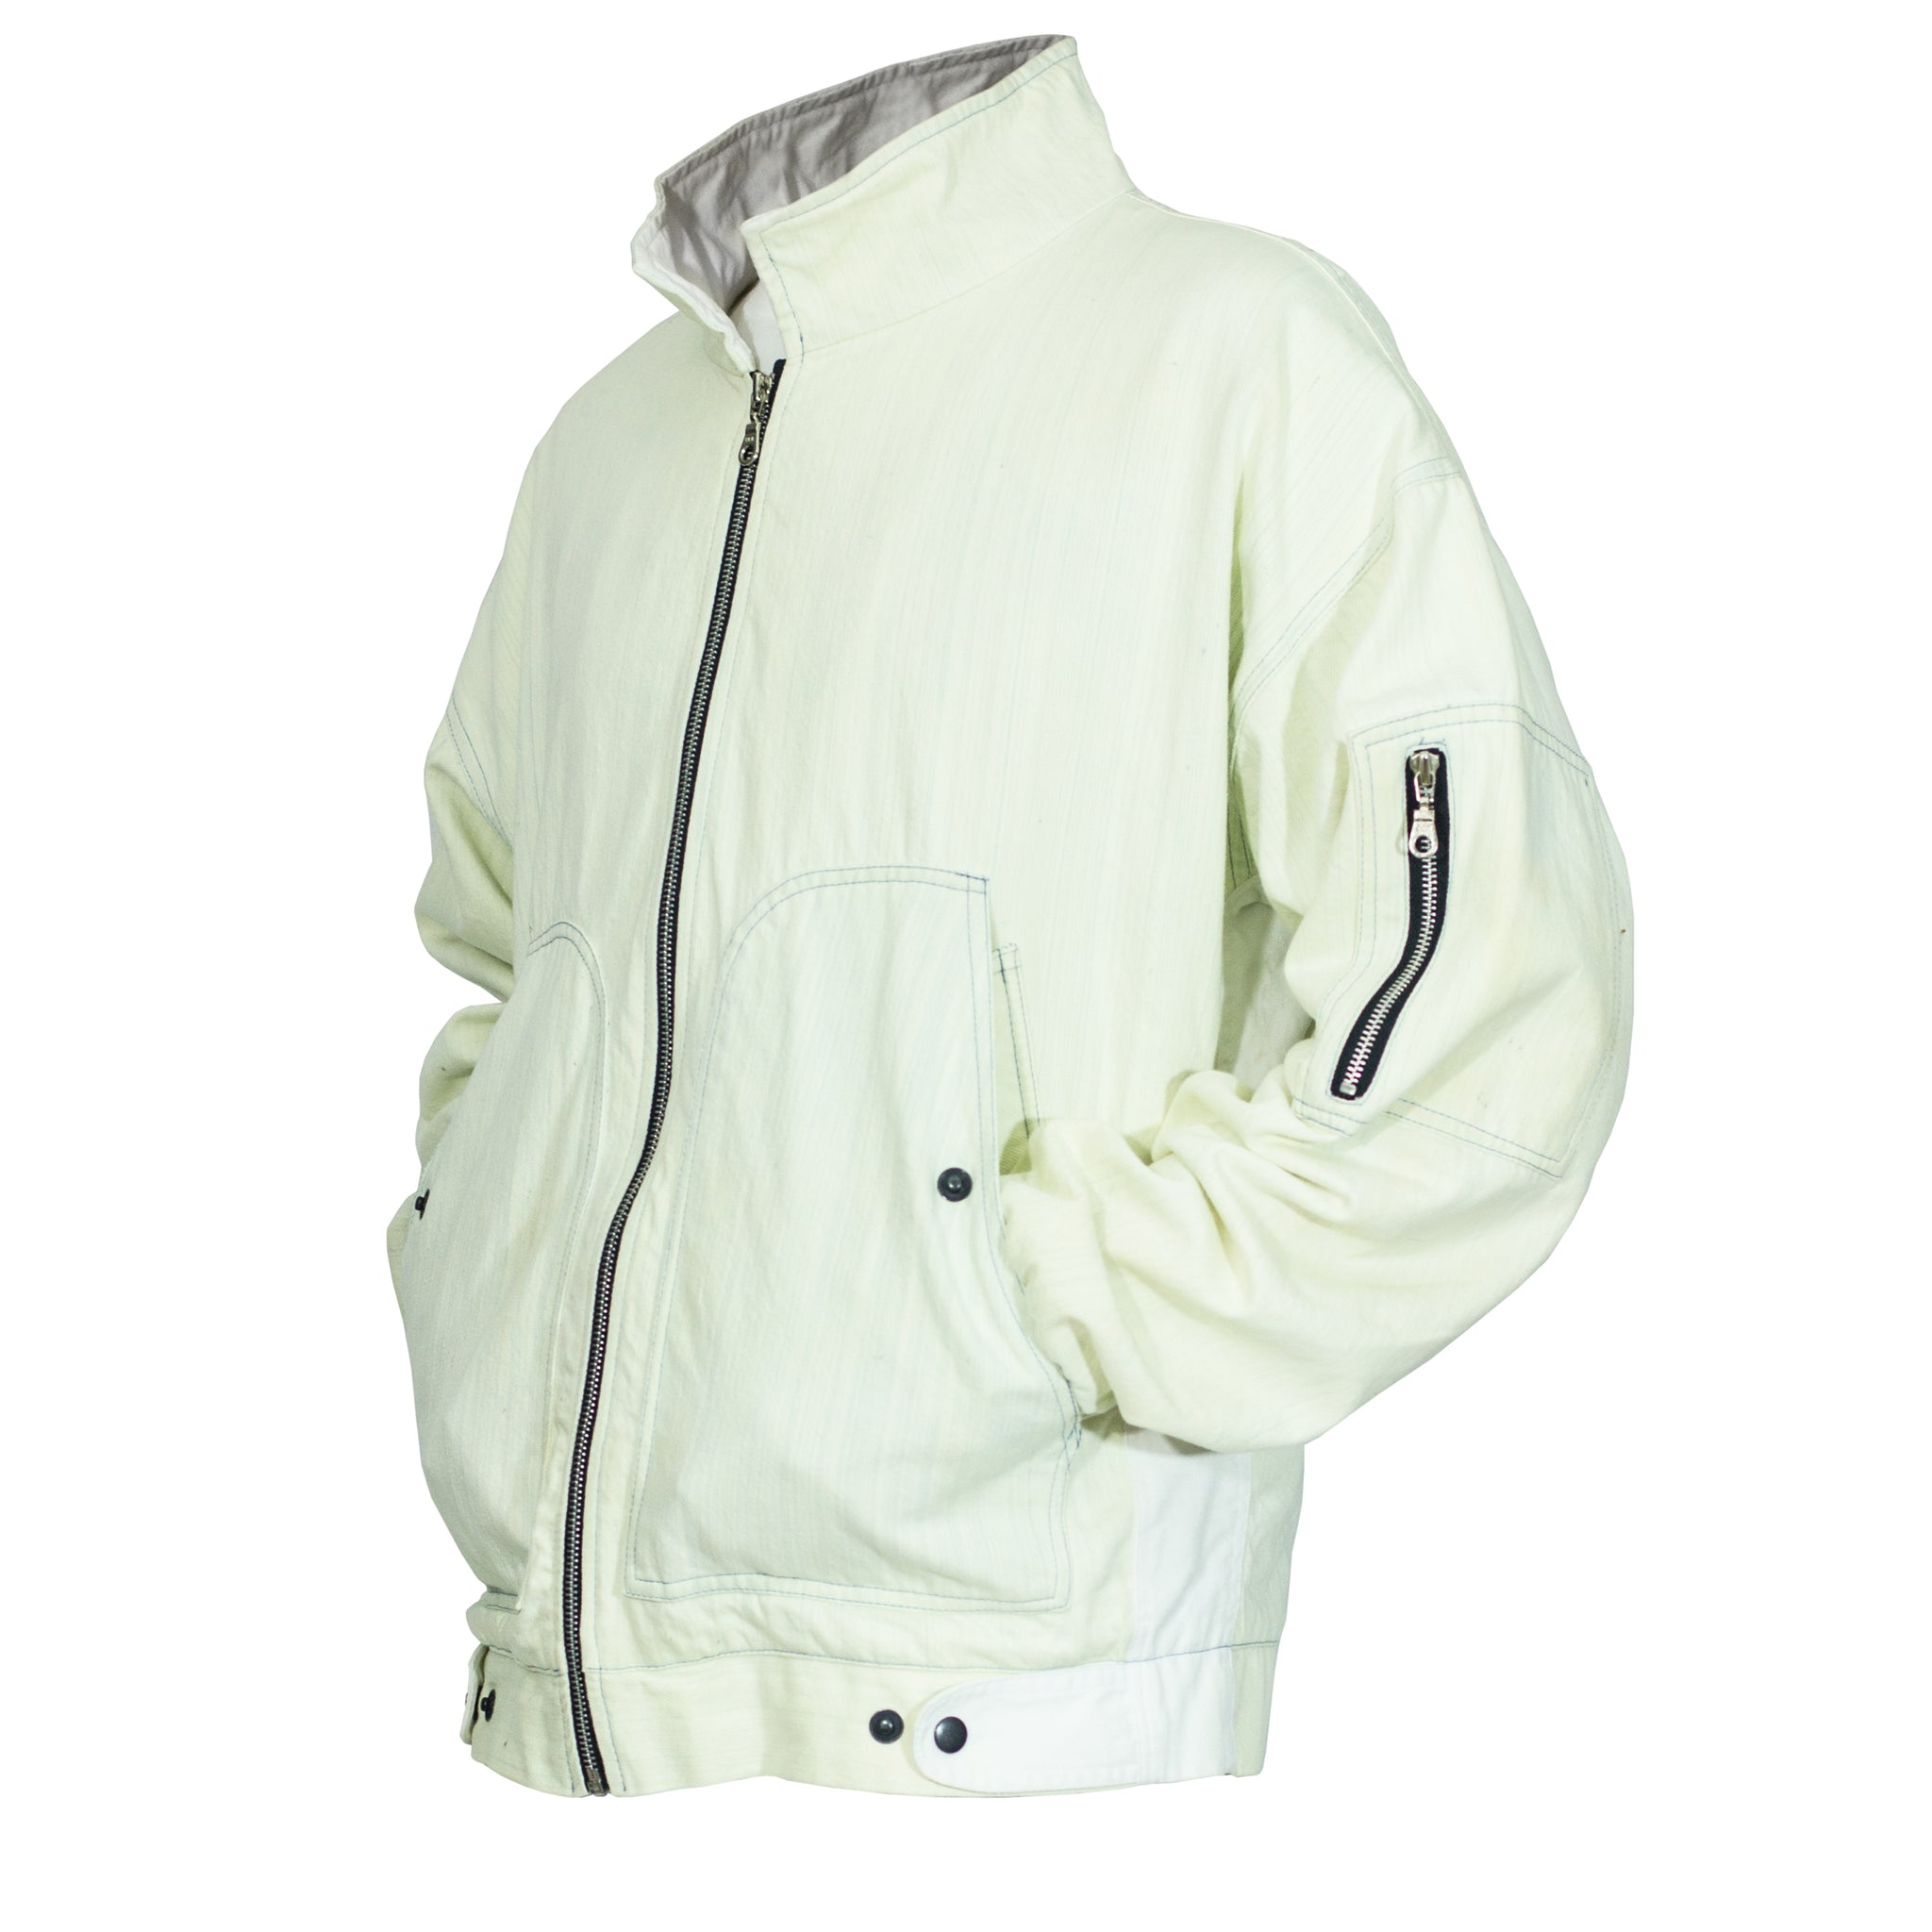 Pilot Jacket 2.0 : Bleach/White